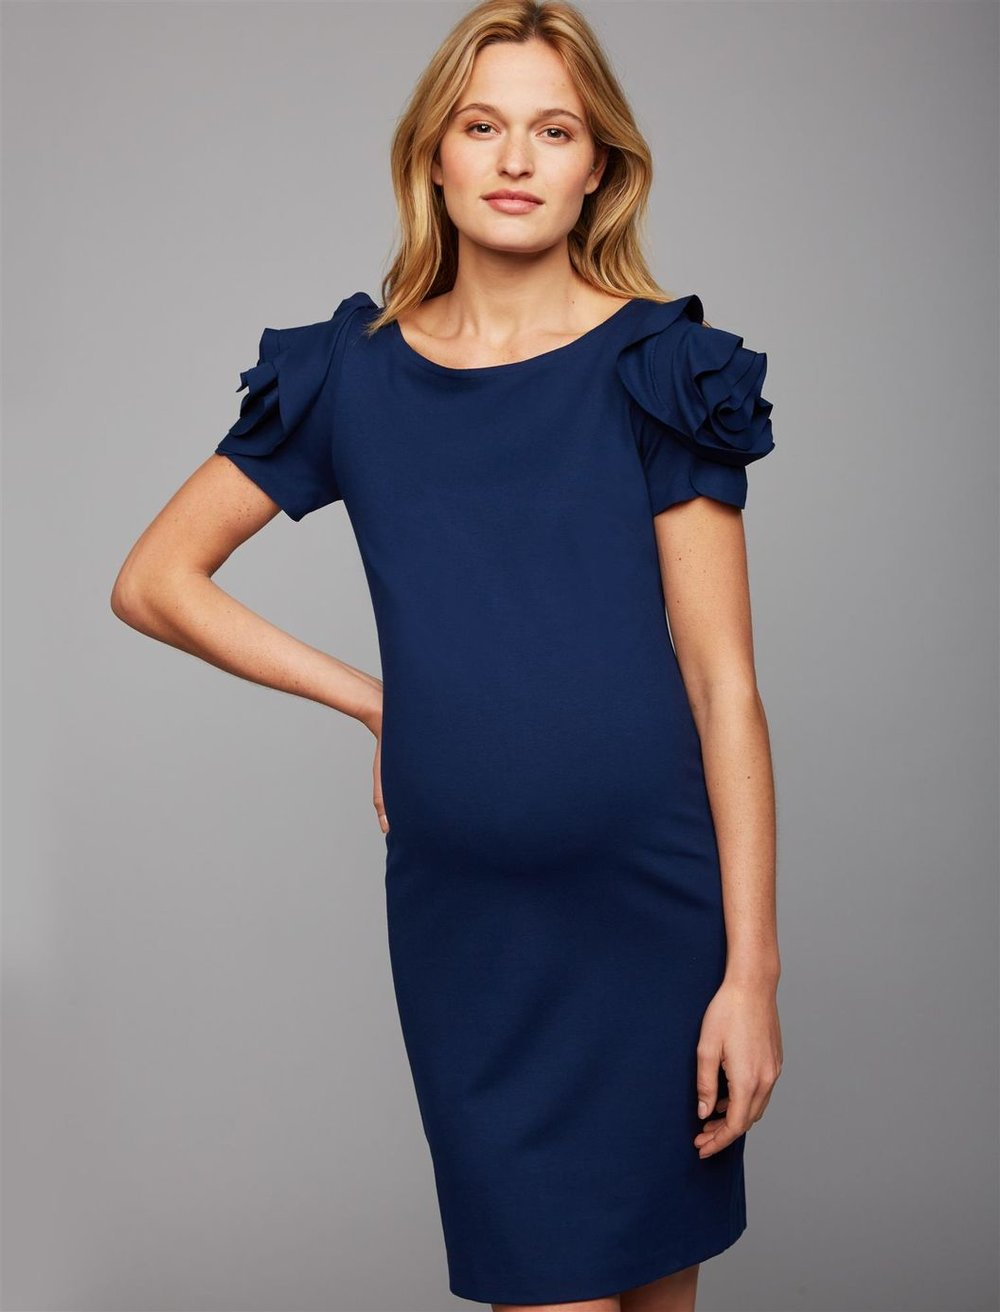 Pietro Brunelli Salisburgo Maternity Dress